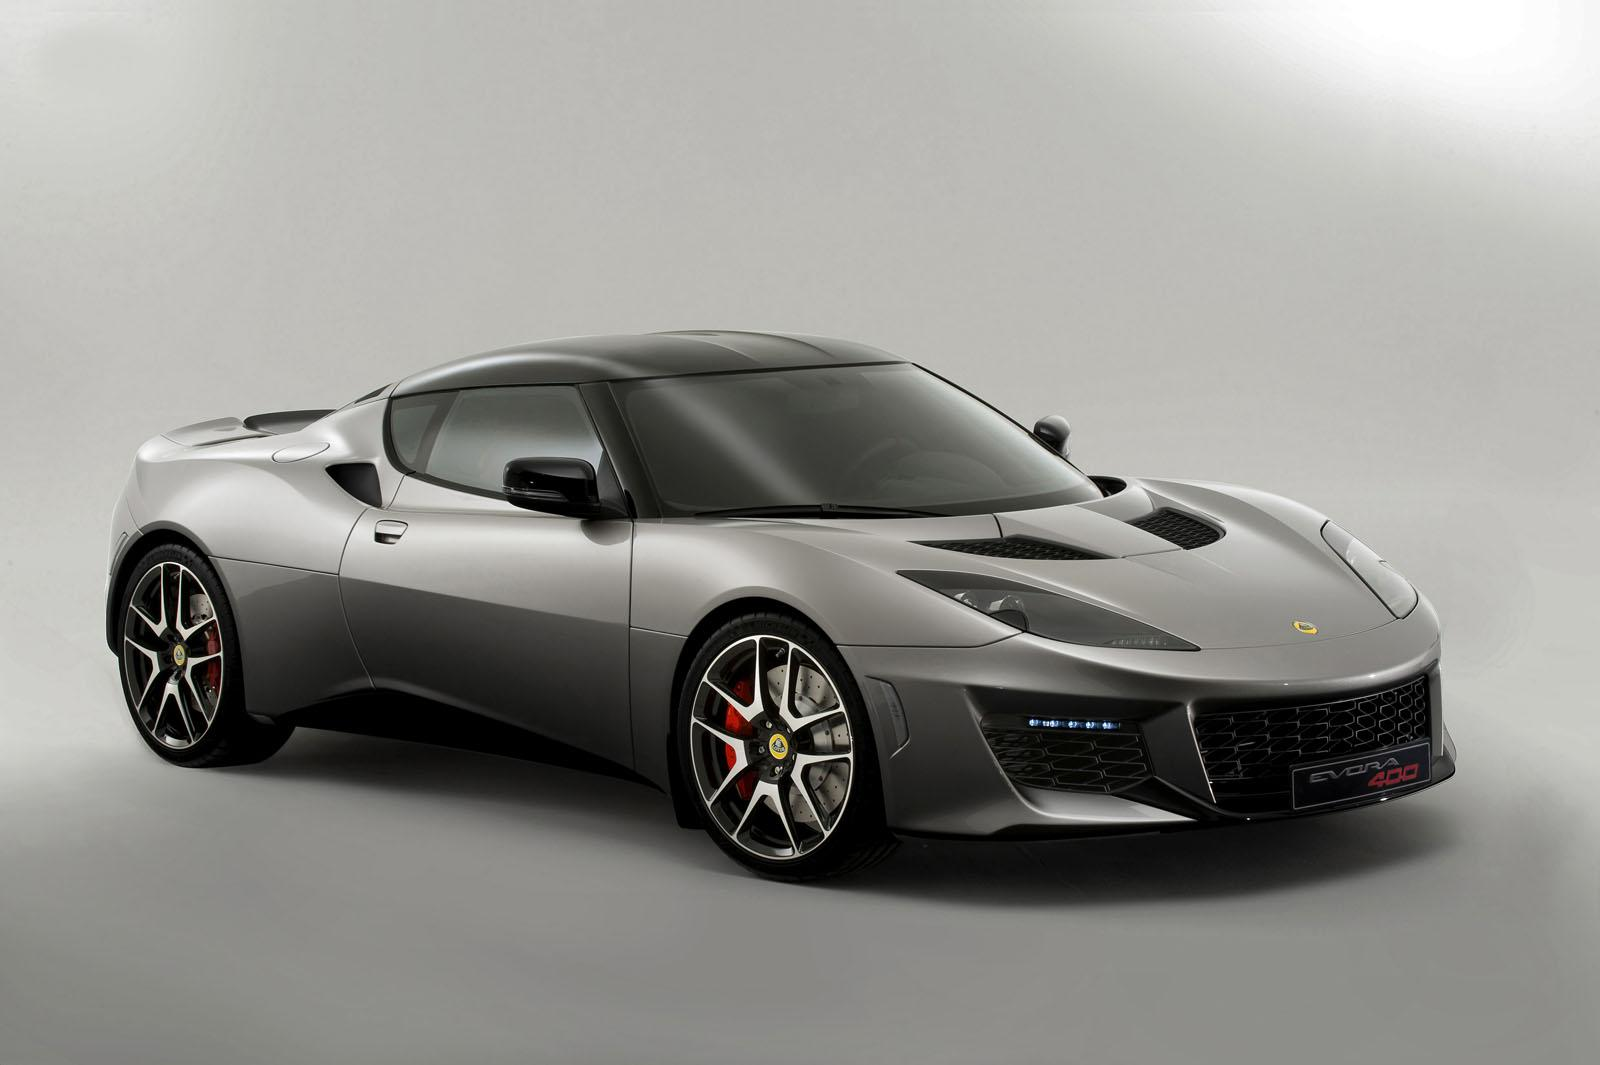 Lotus Evora 400 Blue & Orange Edition